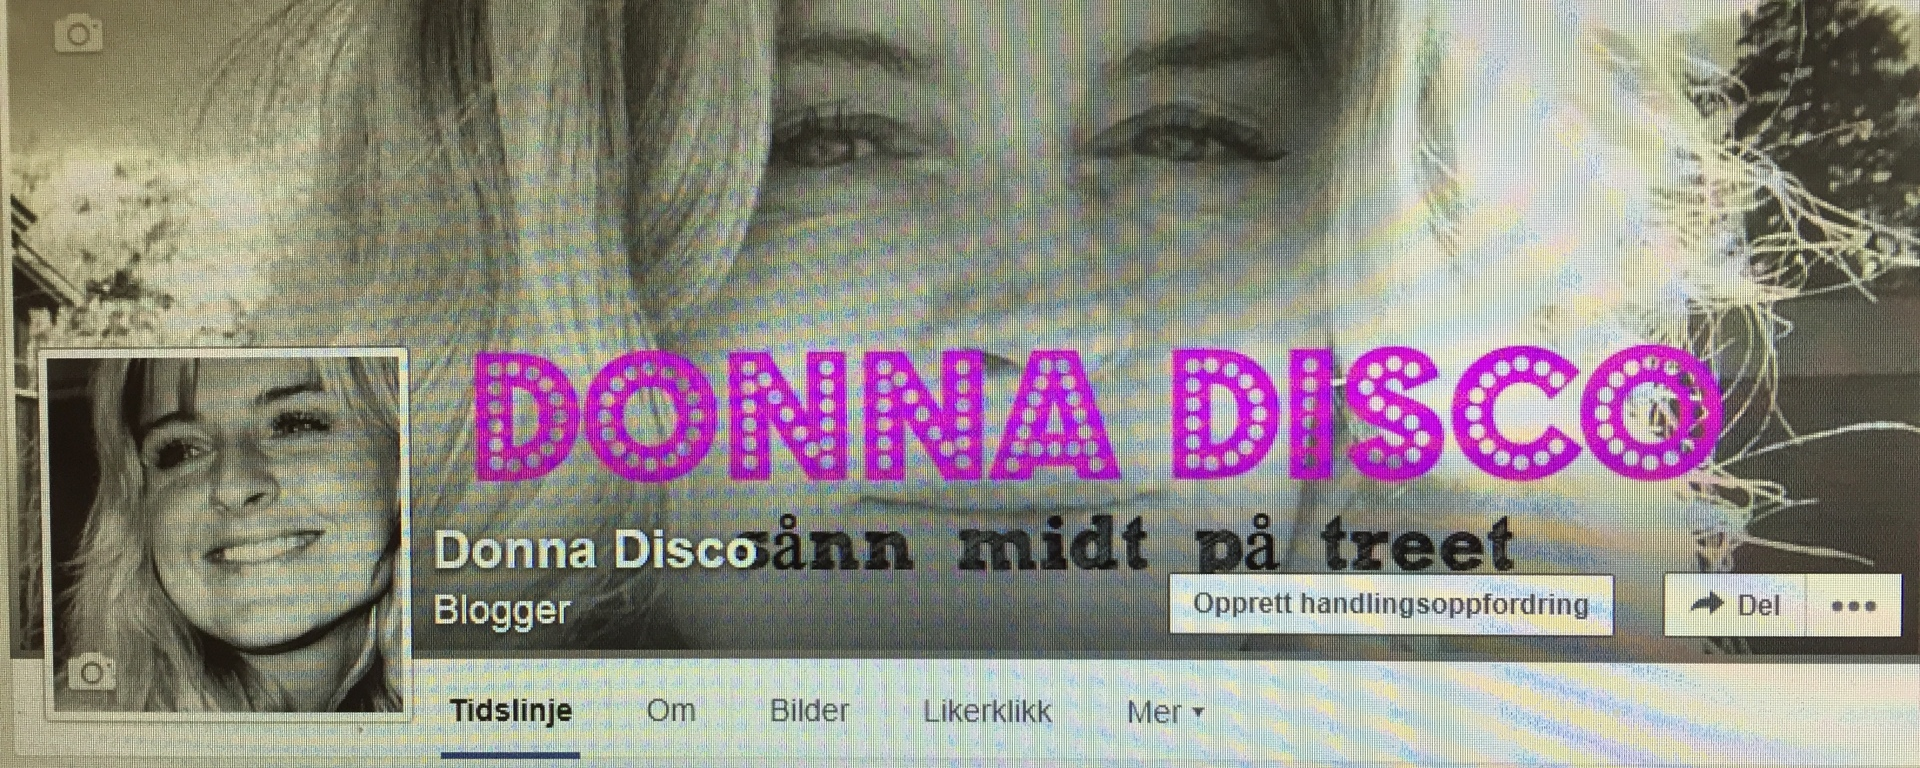 Man kan til og med ha egen Facebook-side til bloggen :-)